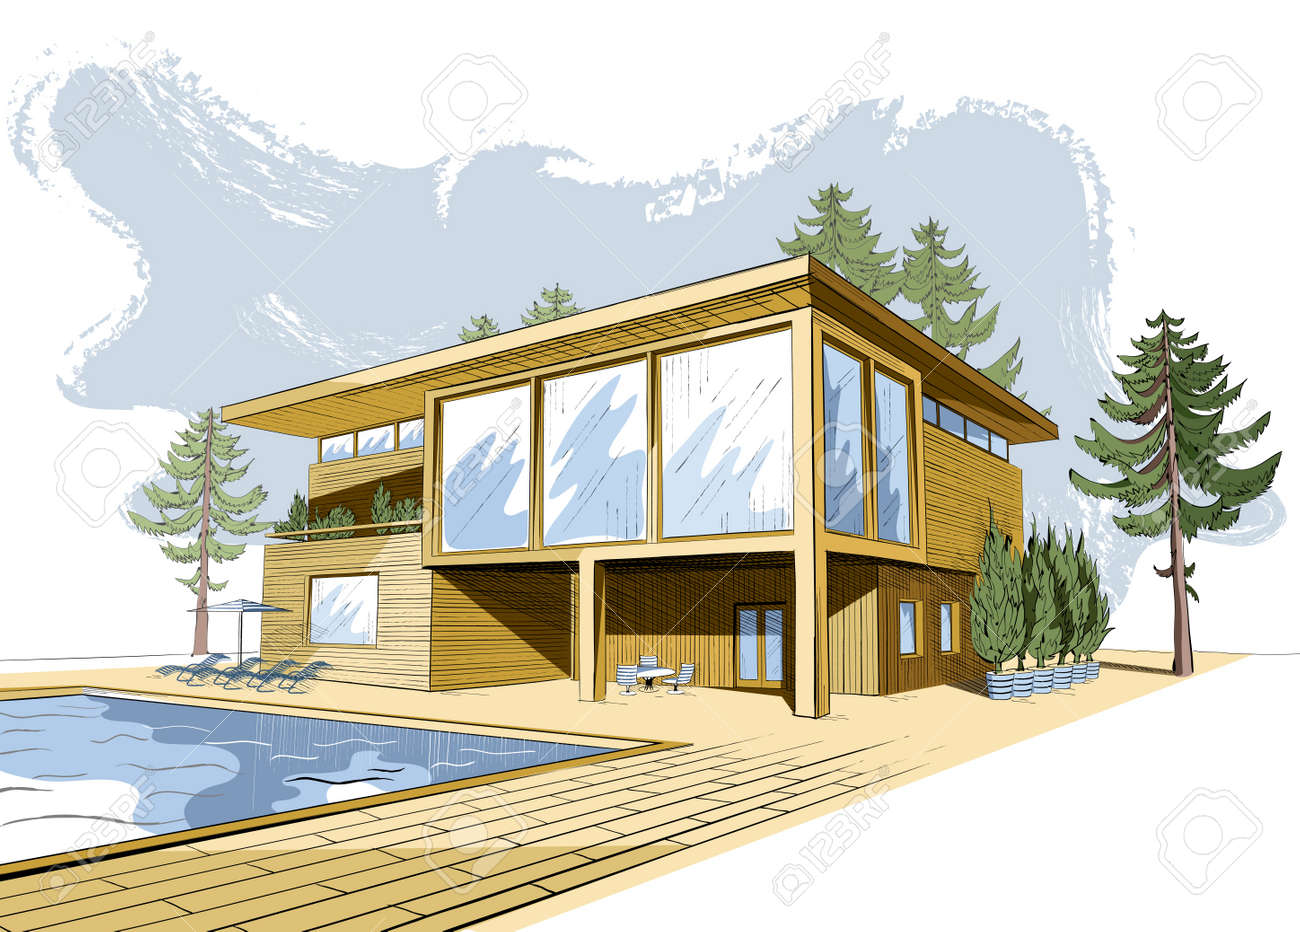 Colored Sketch Of Modern Suburban Wooden House With Swimming Pool And  Chaise Lounges Stock Vector